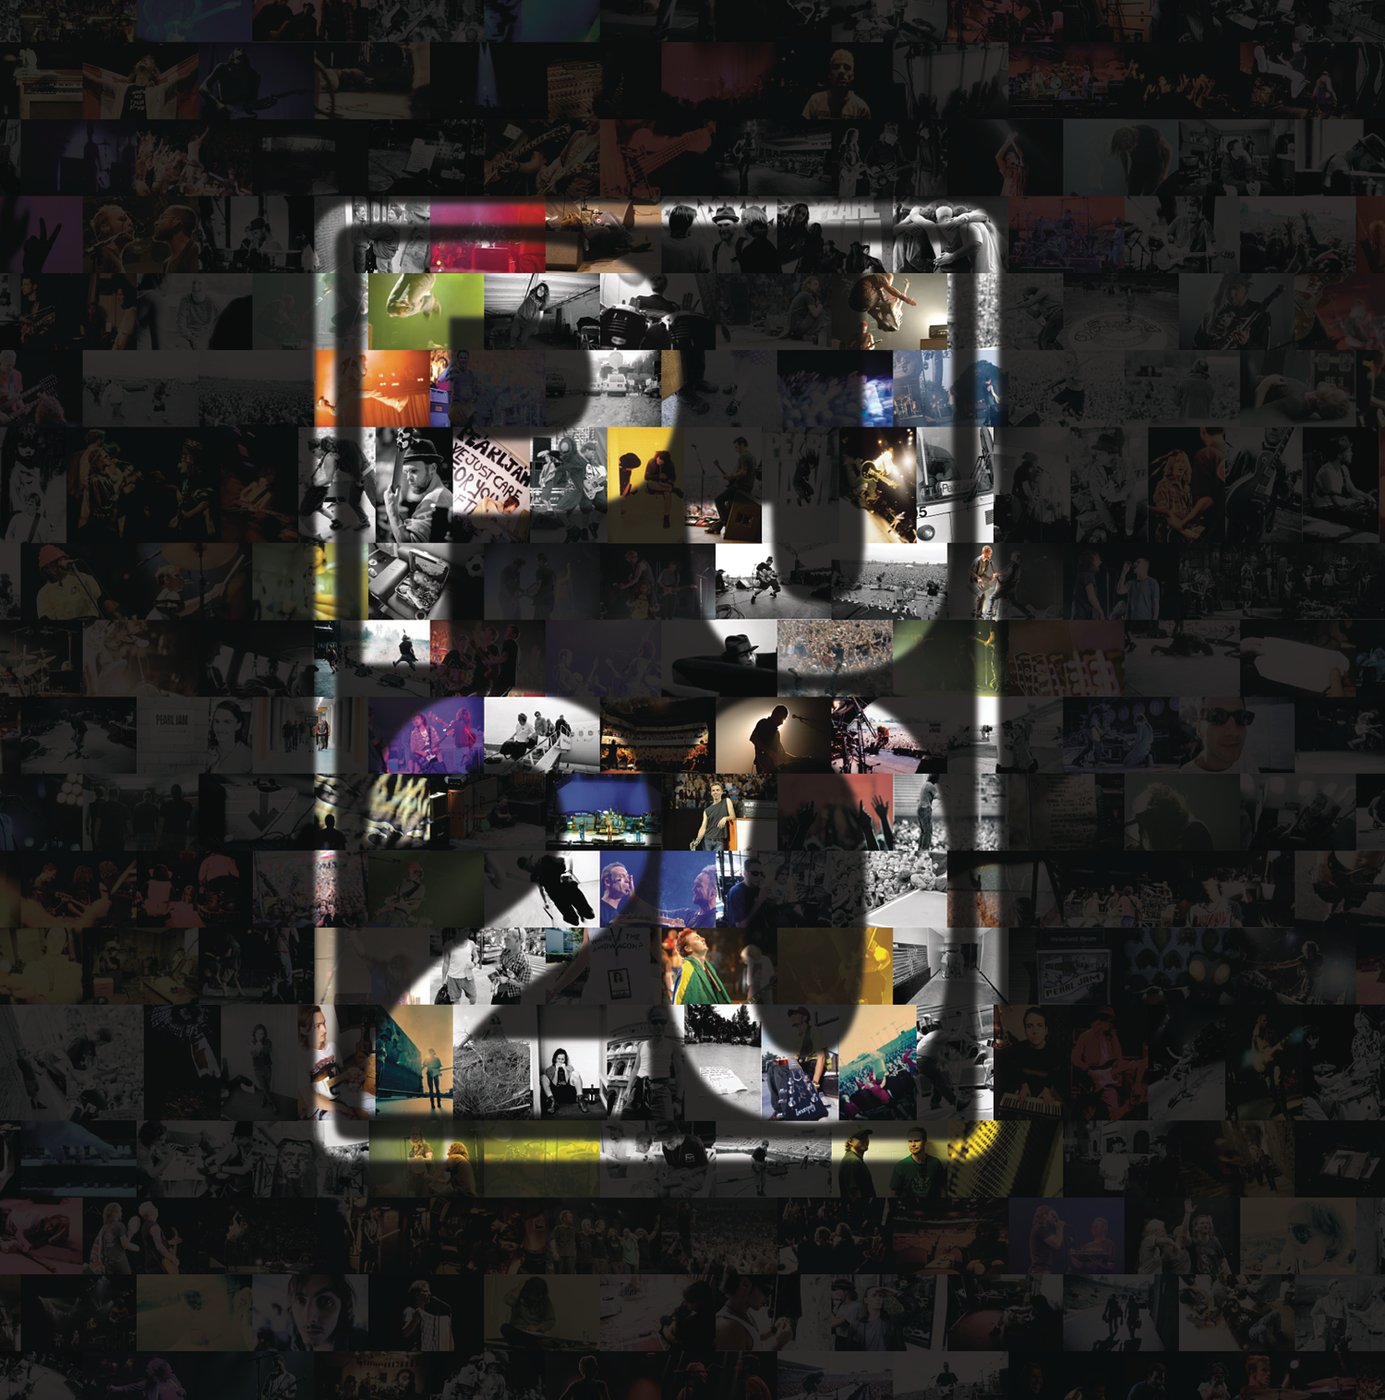 Twenty Motion Picture Soundtrack by Pearl Jam